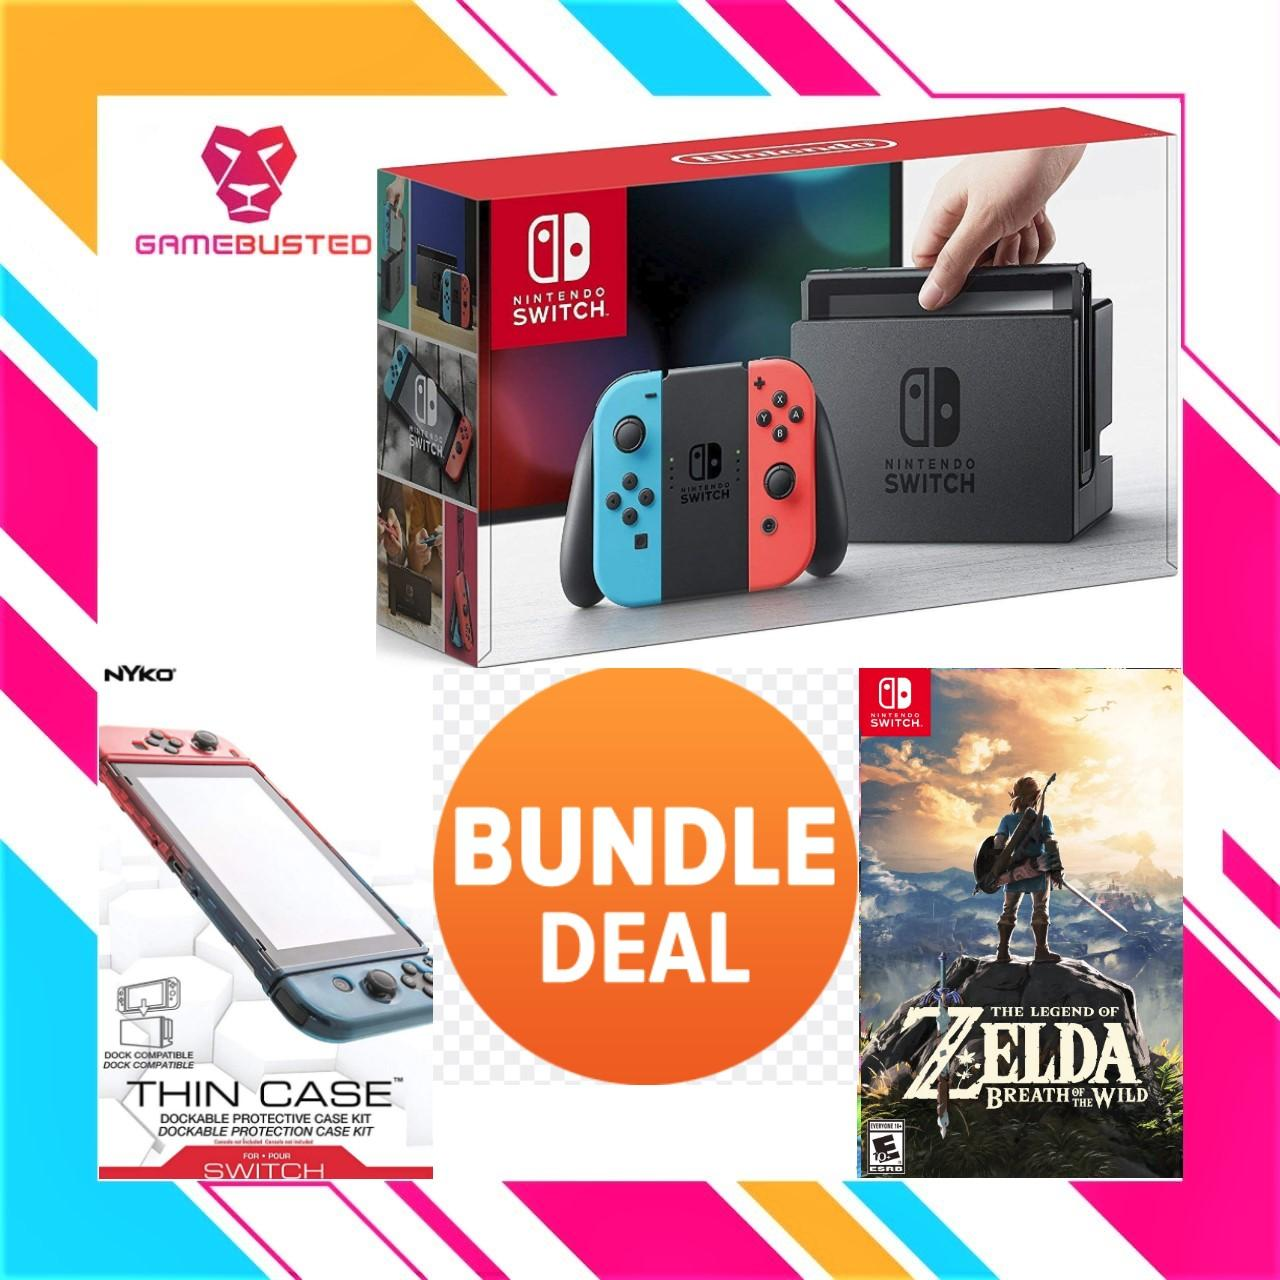 Nintendo Switch Console Bundle With Nintendo Switch The Legend Of Zelda Breath Of Wild +nyko Thin Case Includes Screen Armour (grey/neon)(1 Year Local Warranty) By Game Busted.